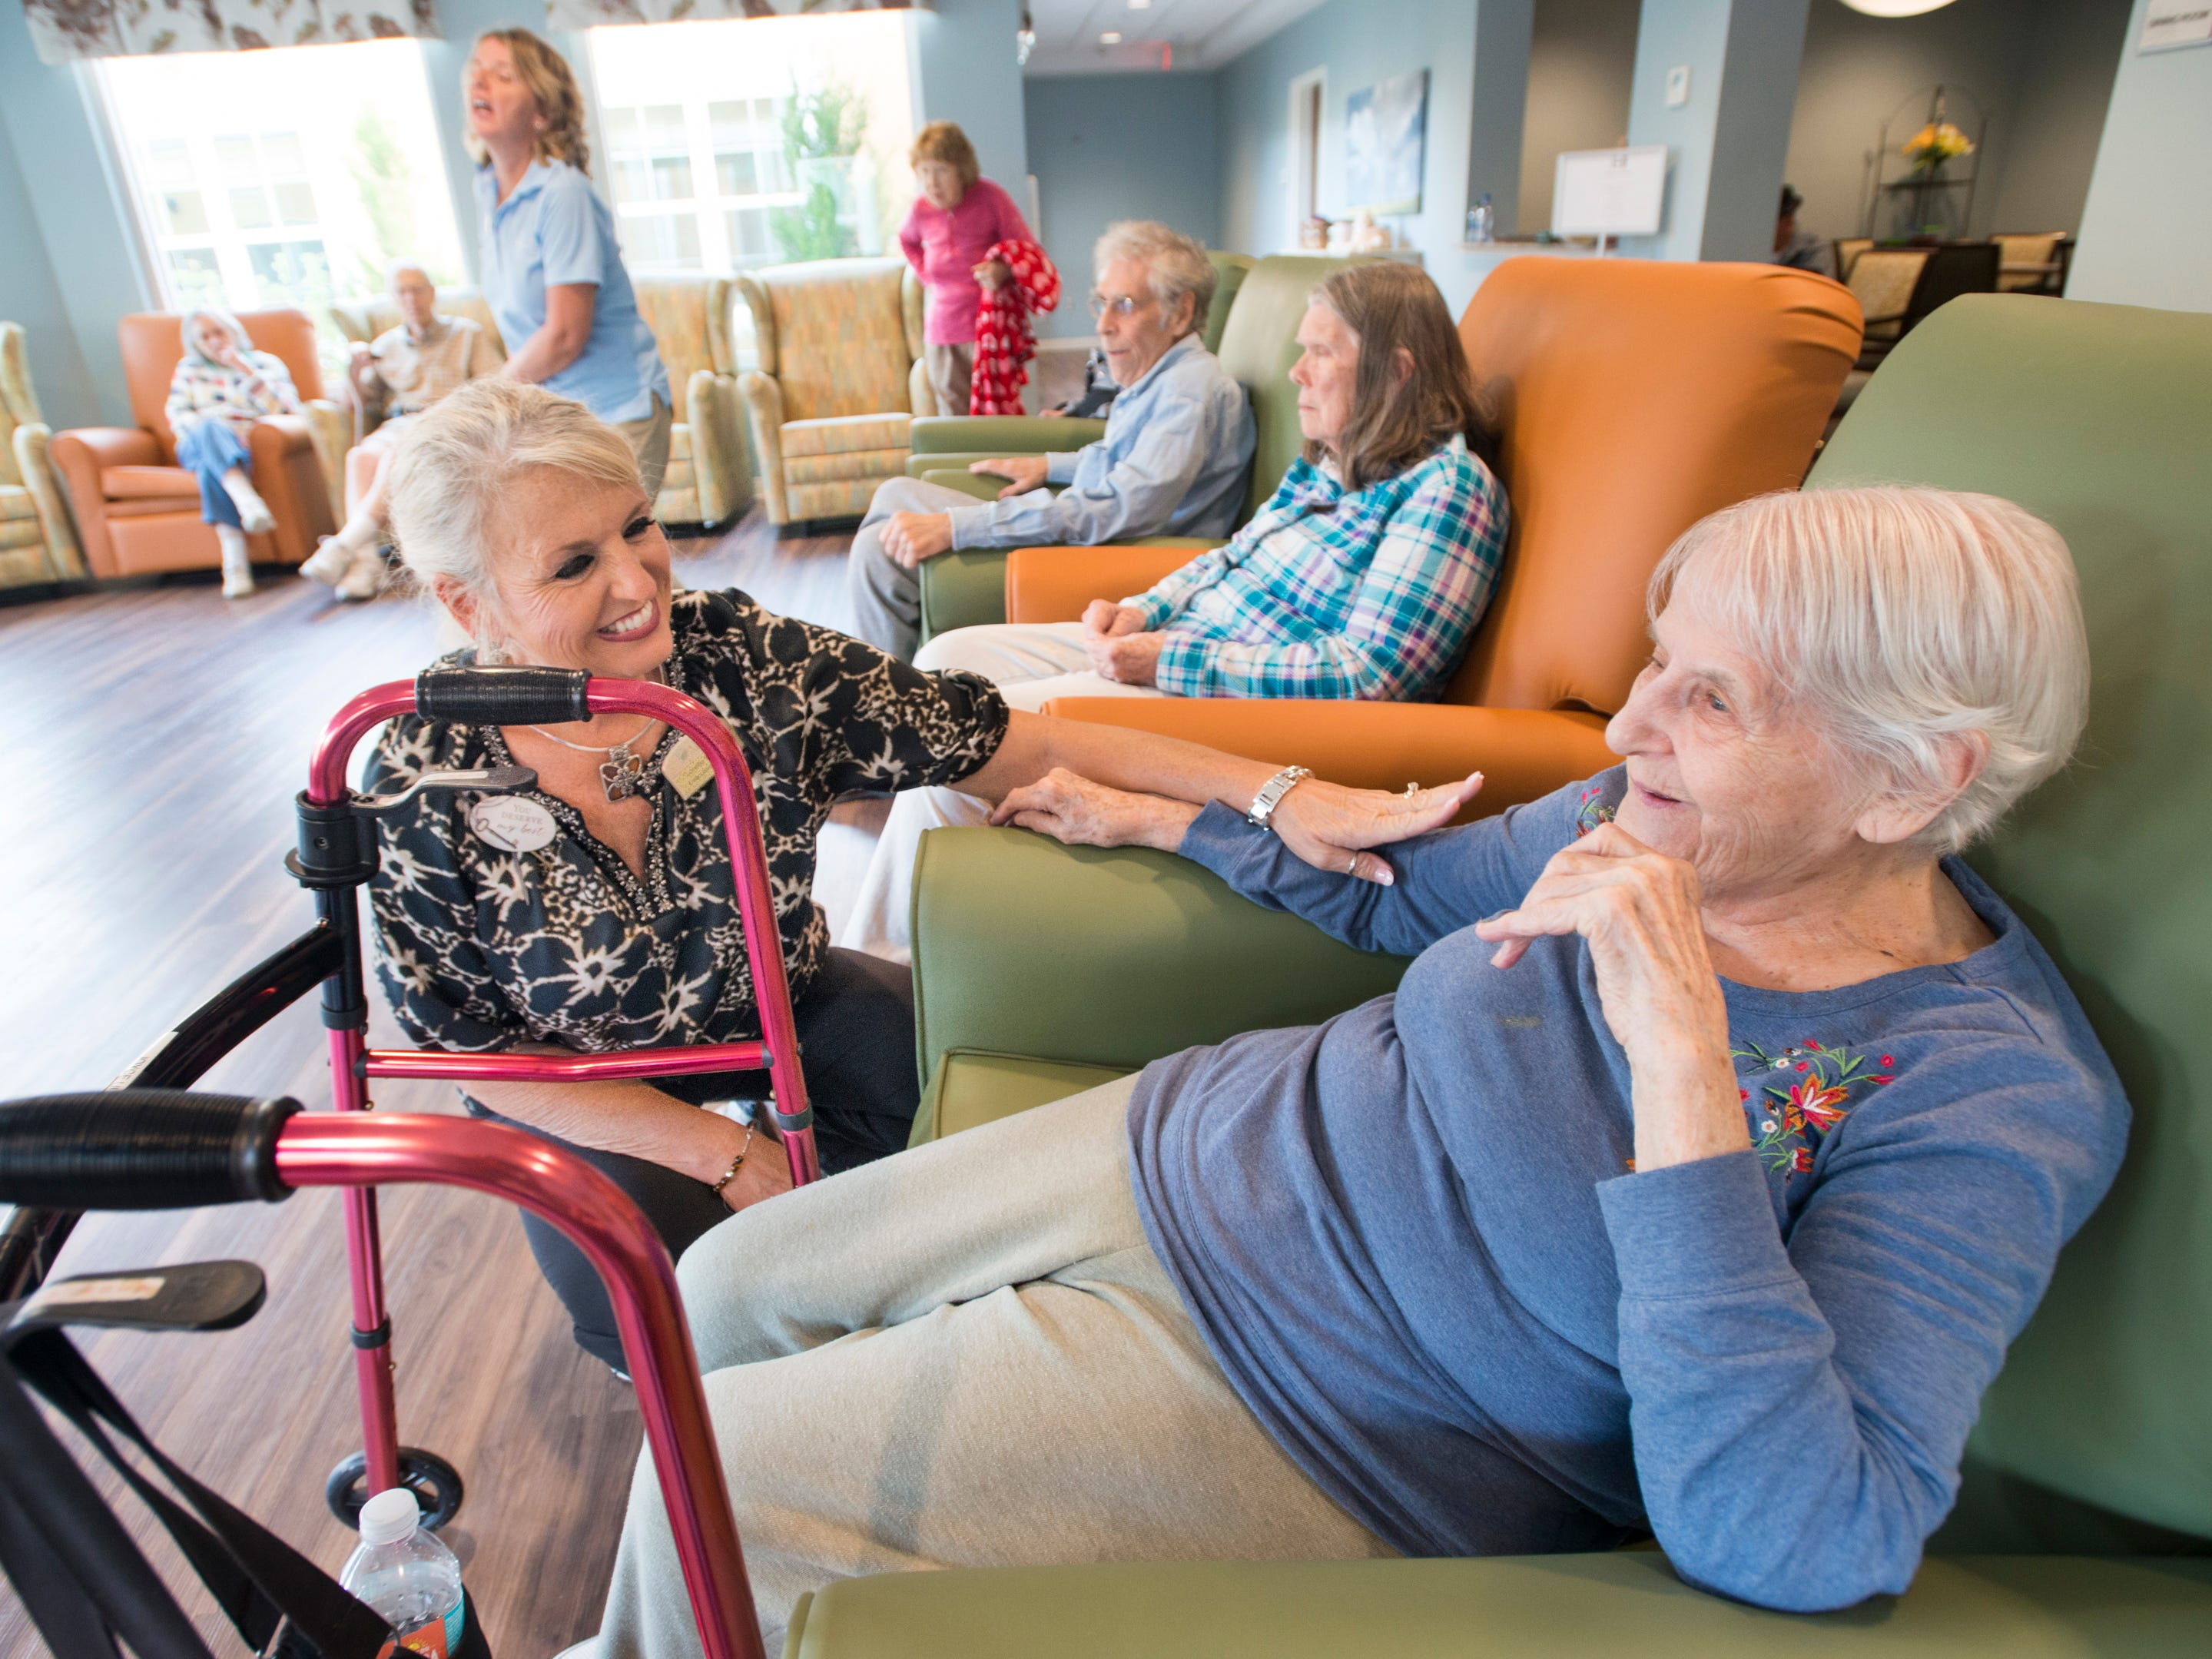 Executive director Lonette Bentley, left, chats with Joyce Ullmann, a resident of the Seagrass Village of Panama City Beach, on Tuesday, Oct. 9, 2018, at The Arbors of Gulf Breeze senior living community. Residents and staff from Panama City were evacuated to the Gulf Breeze sister community as Hurricane Michael approaches the Panhandle.